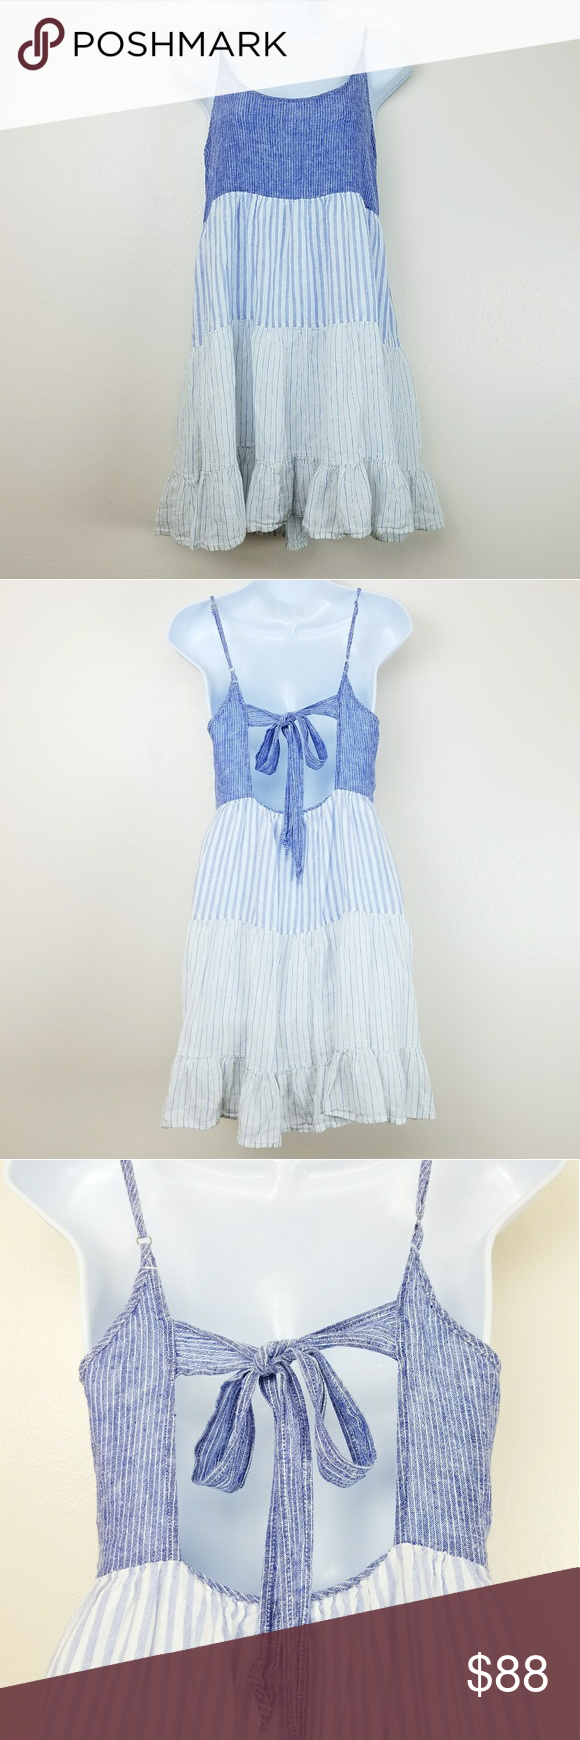 ff78713f35f3 Rails Chambray Amber Trio Stripe Dress Medium Adorable Rails Summer Dress  in tiered chambray Trio Stripe